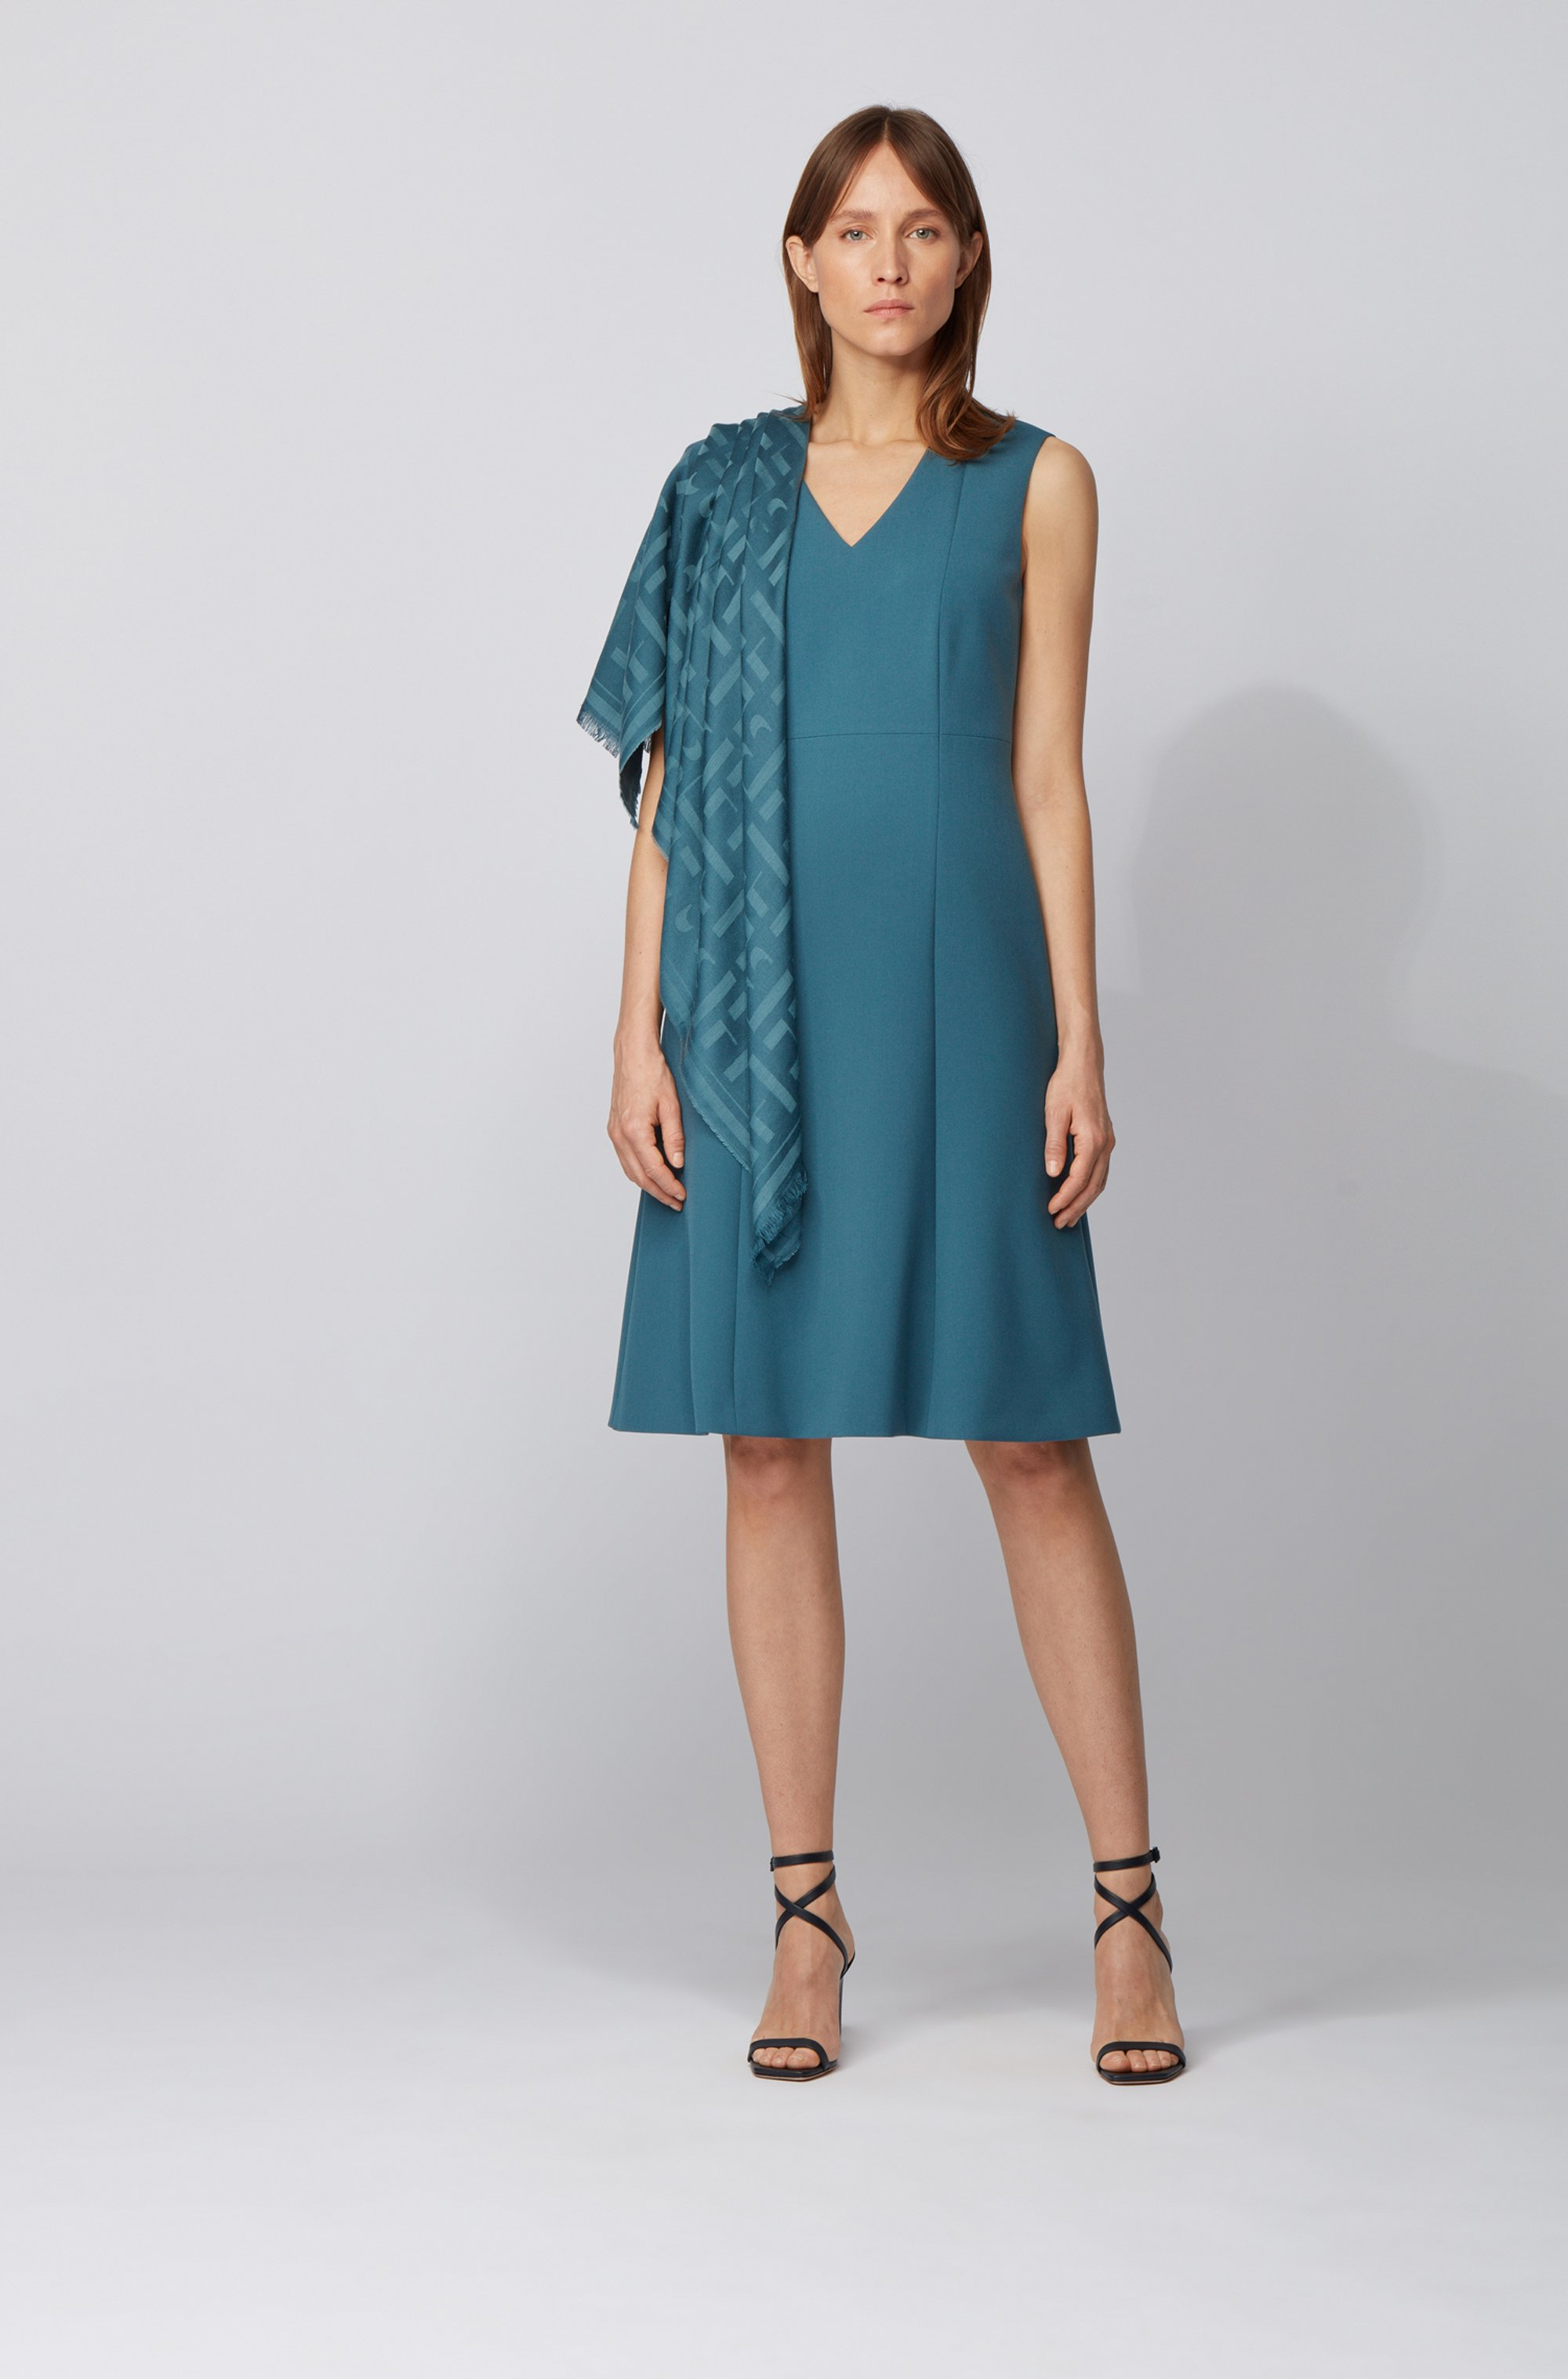 V-neck dress in double-faced Portuguese stretch fabric